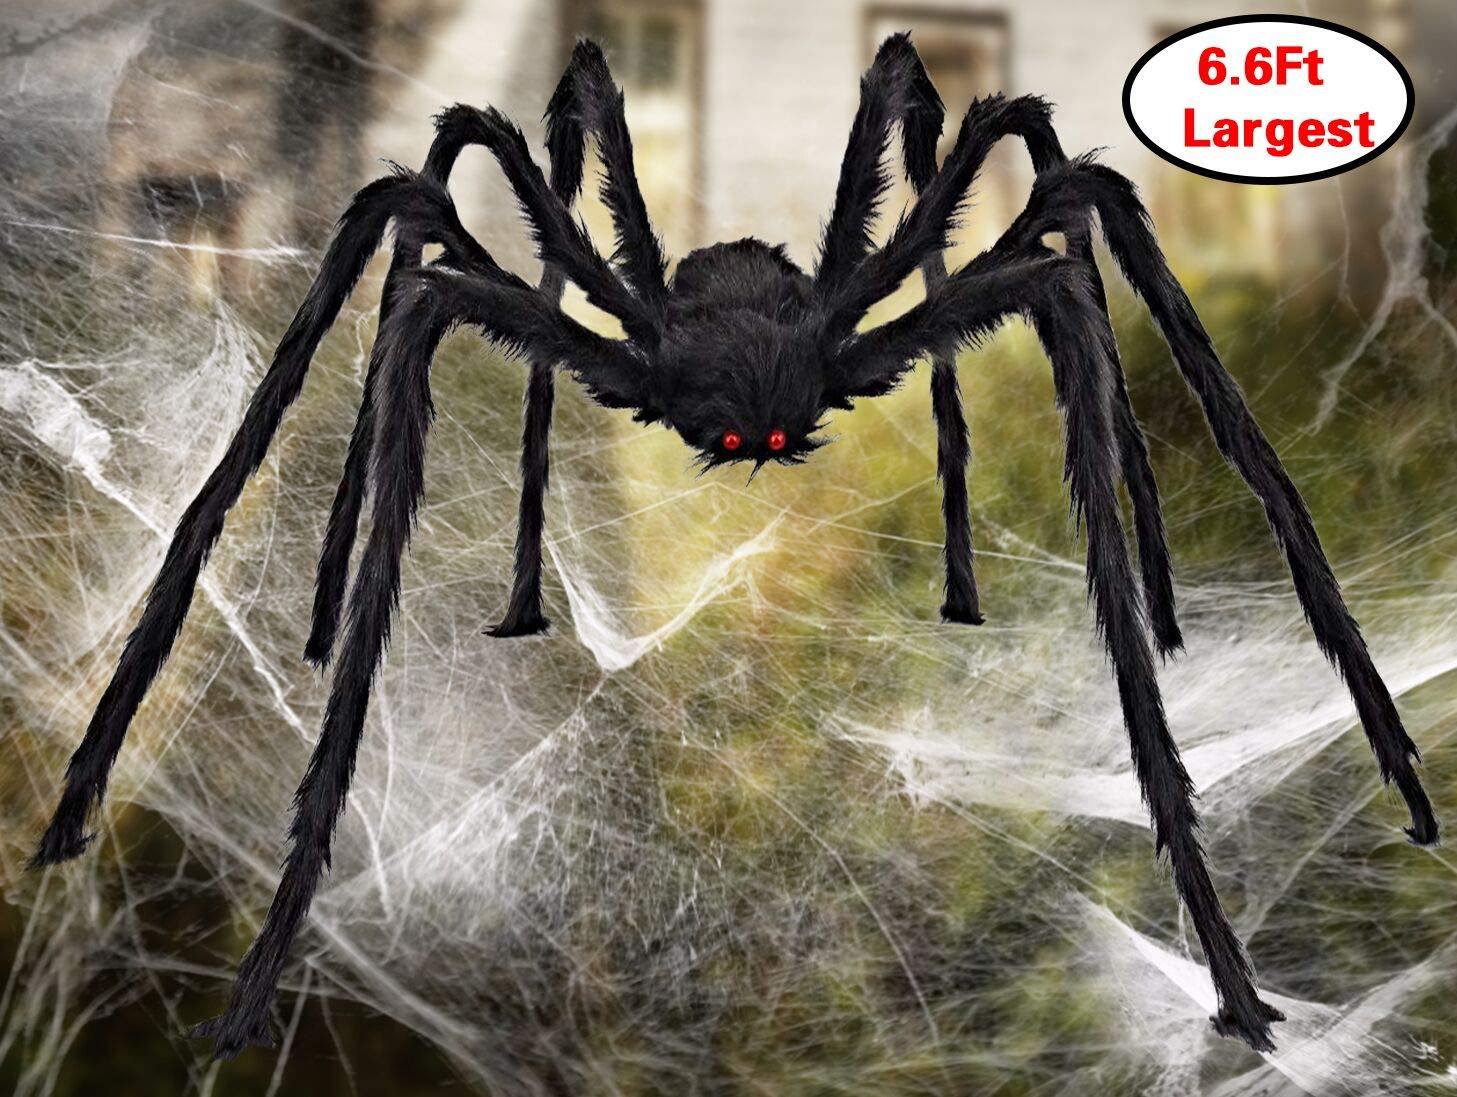 Amazon.com: Aiduy Outdoor Halloween Decorations Scary Giant Spider Fake  Large Spider Hairy Spider Props for Halloween Yard Decorations Party Decor,  Black, ...